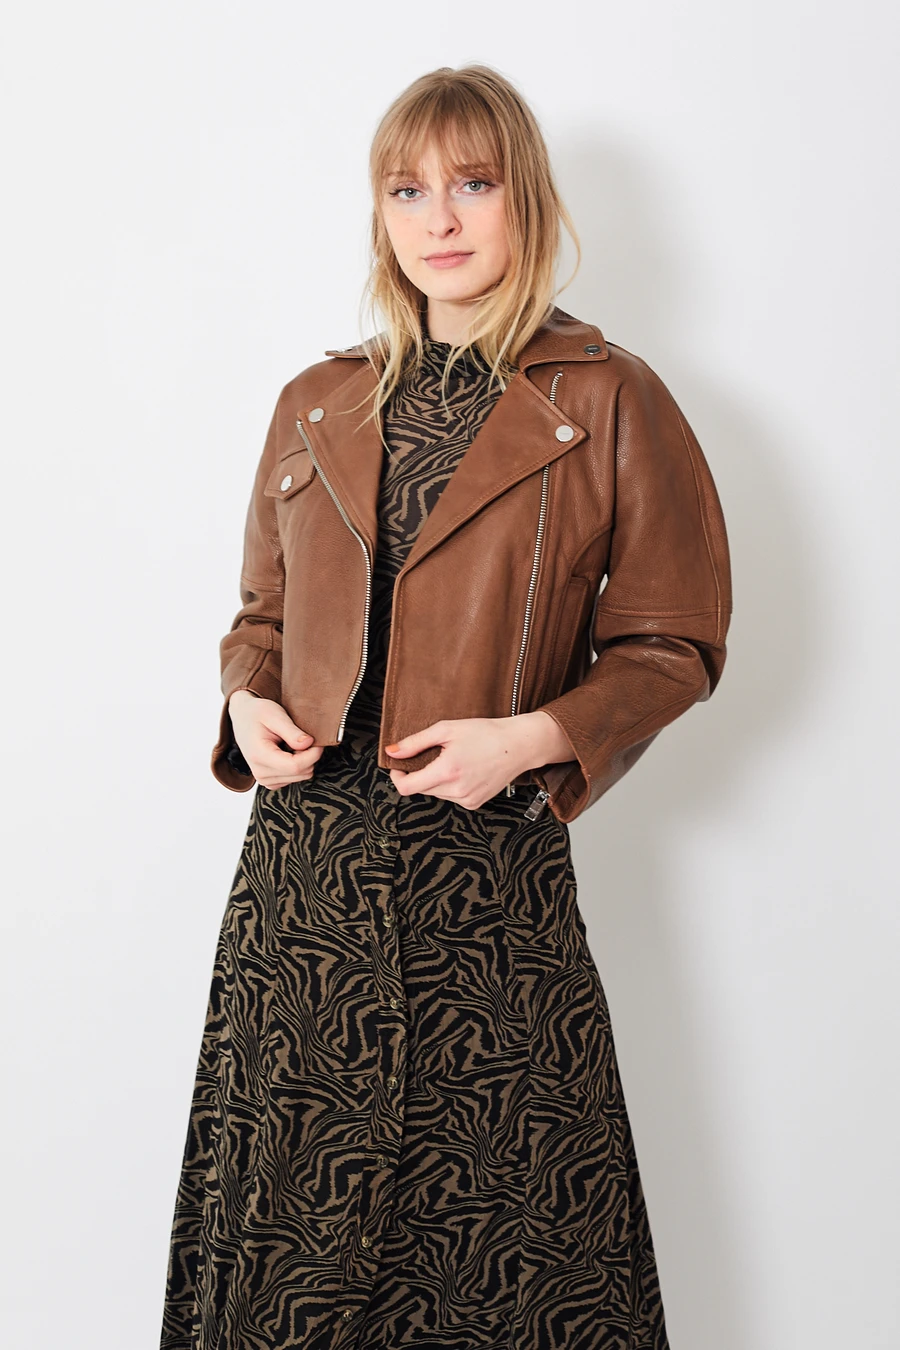 Ganni Grain Leather Jacket Tannin Motorcycled Style Cropped Leather Jacket Featuring Silver Hardware And Cropp Cropped Leather Jacket Jackets Leather Jacket [ 1350 x 900 Pixel ]